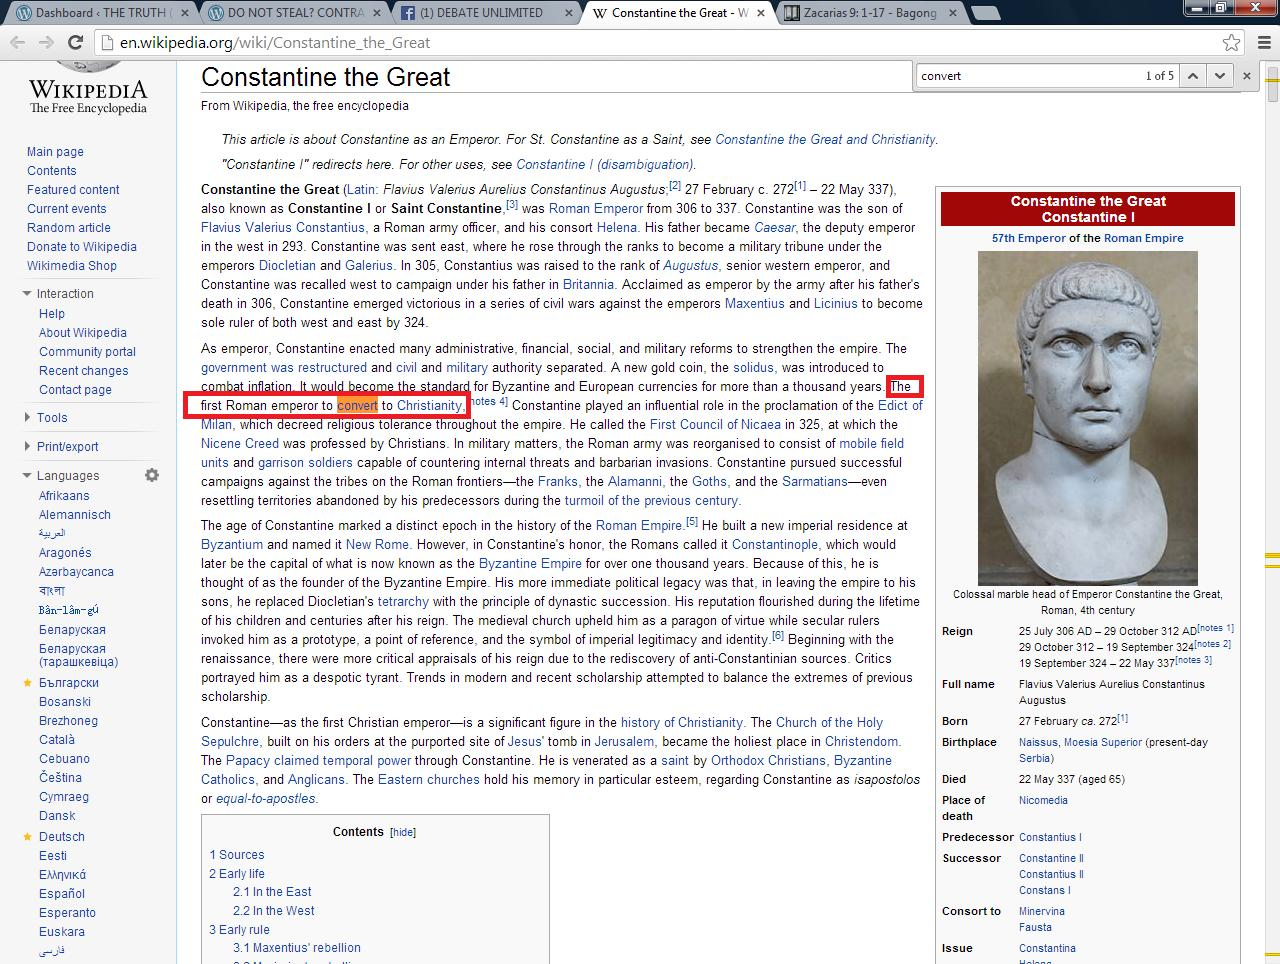 constantine the great and his influence